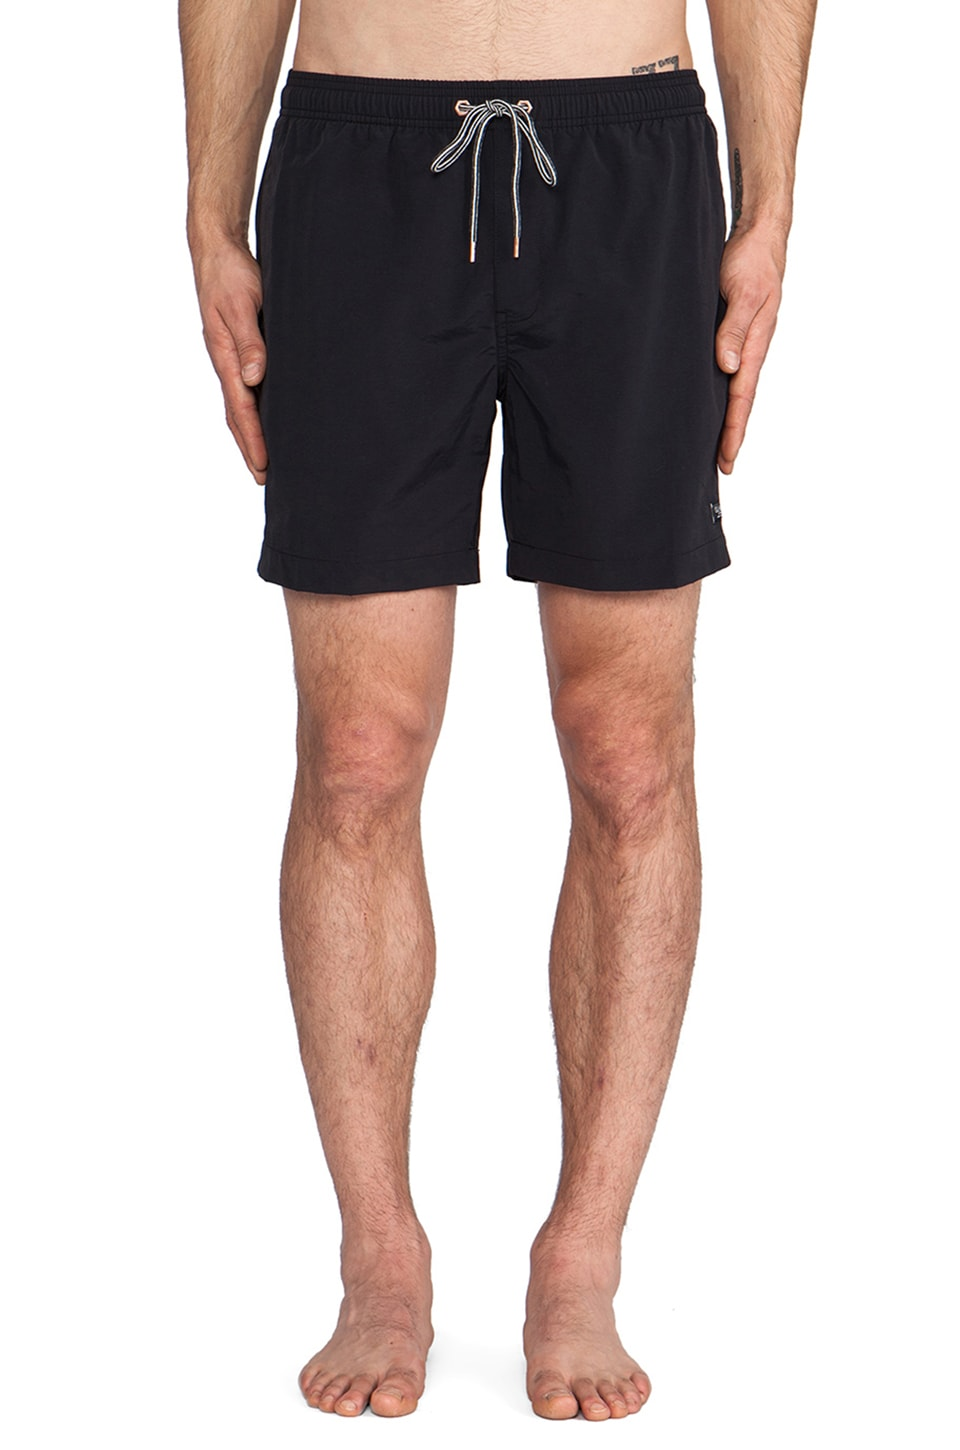 Globe Dana III Poolshort in Black